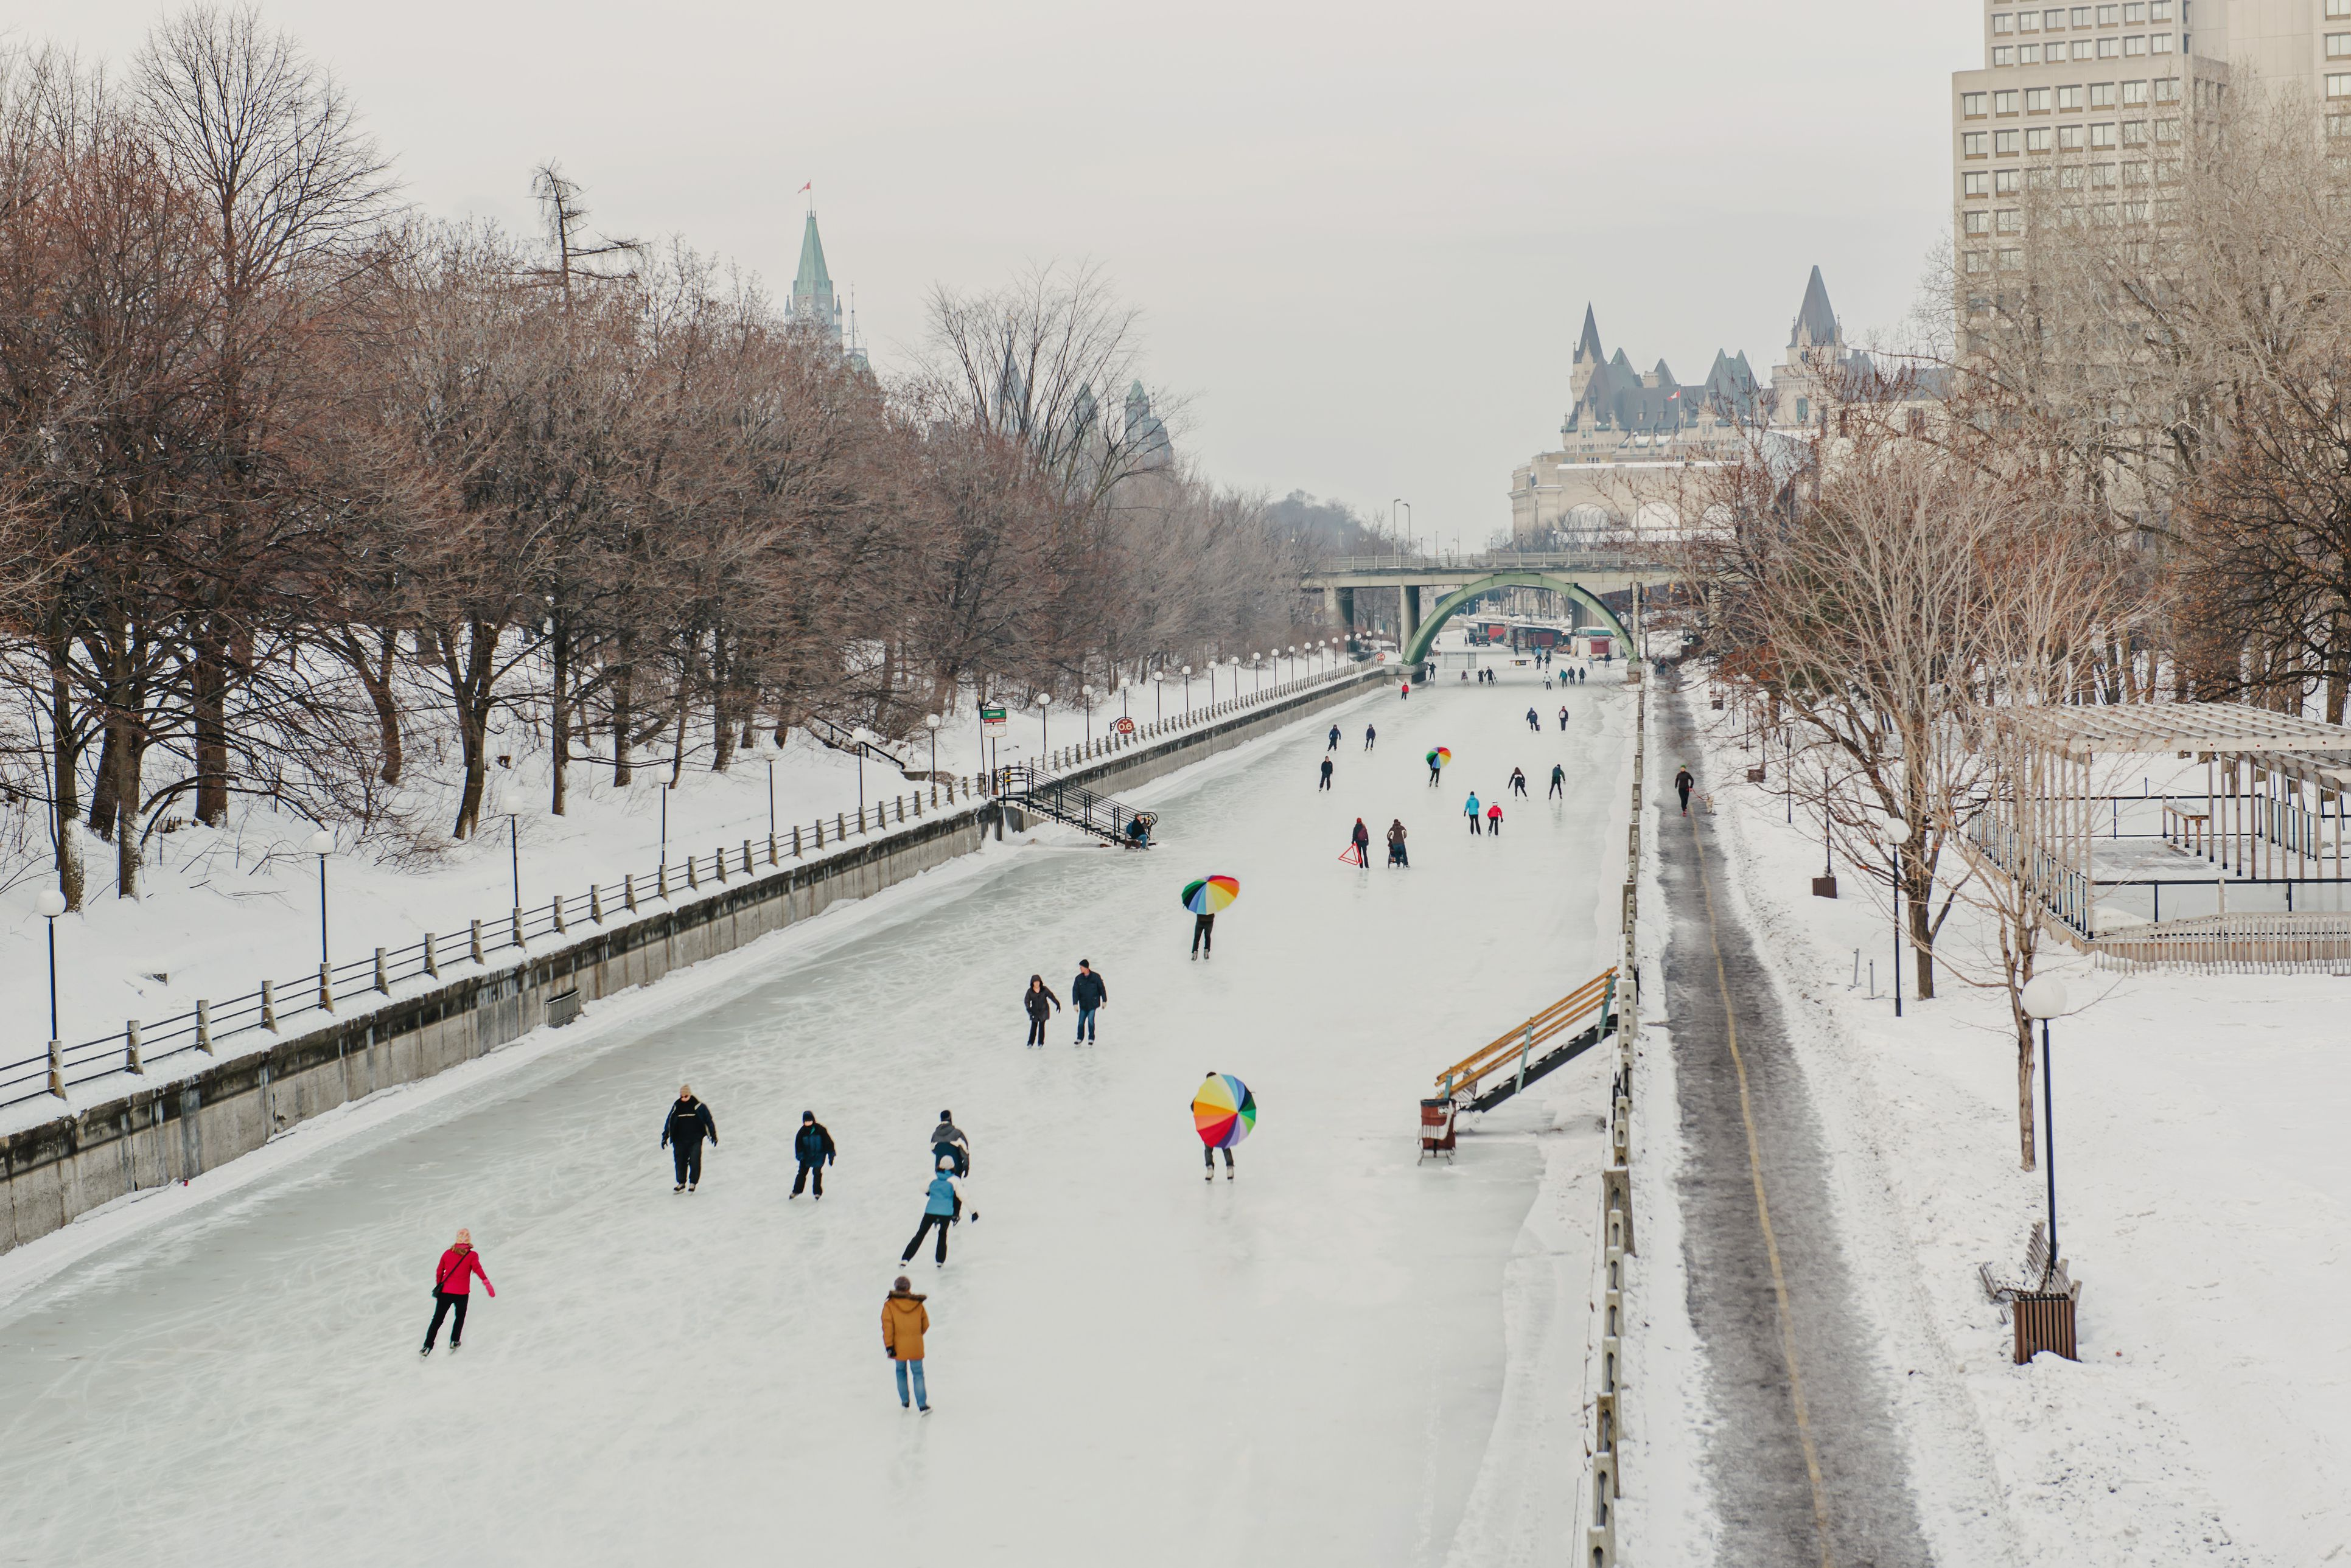 The Most Enjoyable Canadian Winter Activities